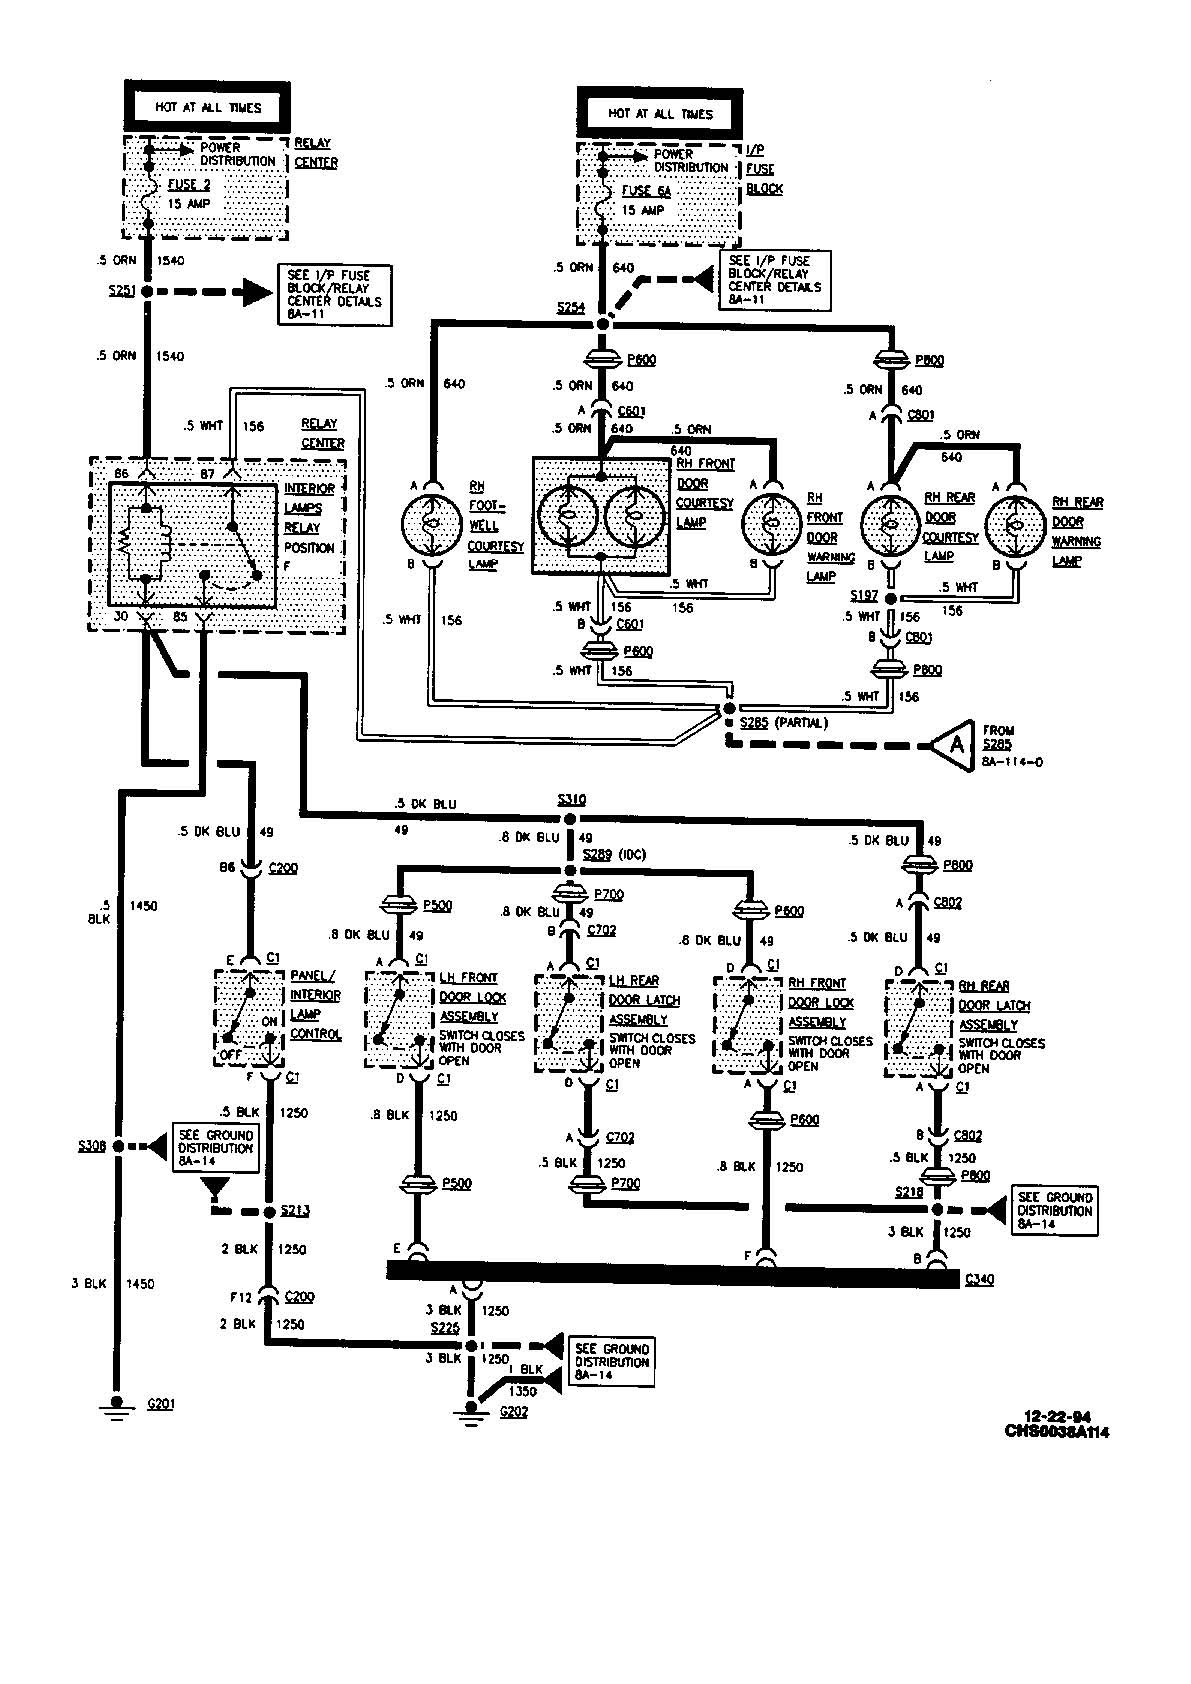 3800 V6 Engine Lines Diagram Wiring Library